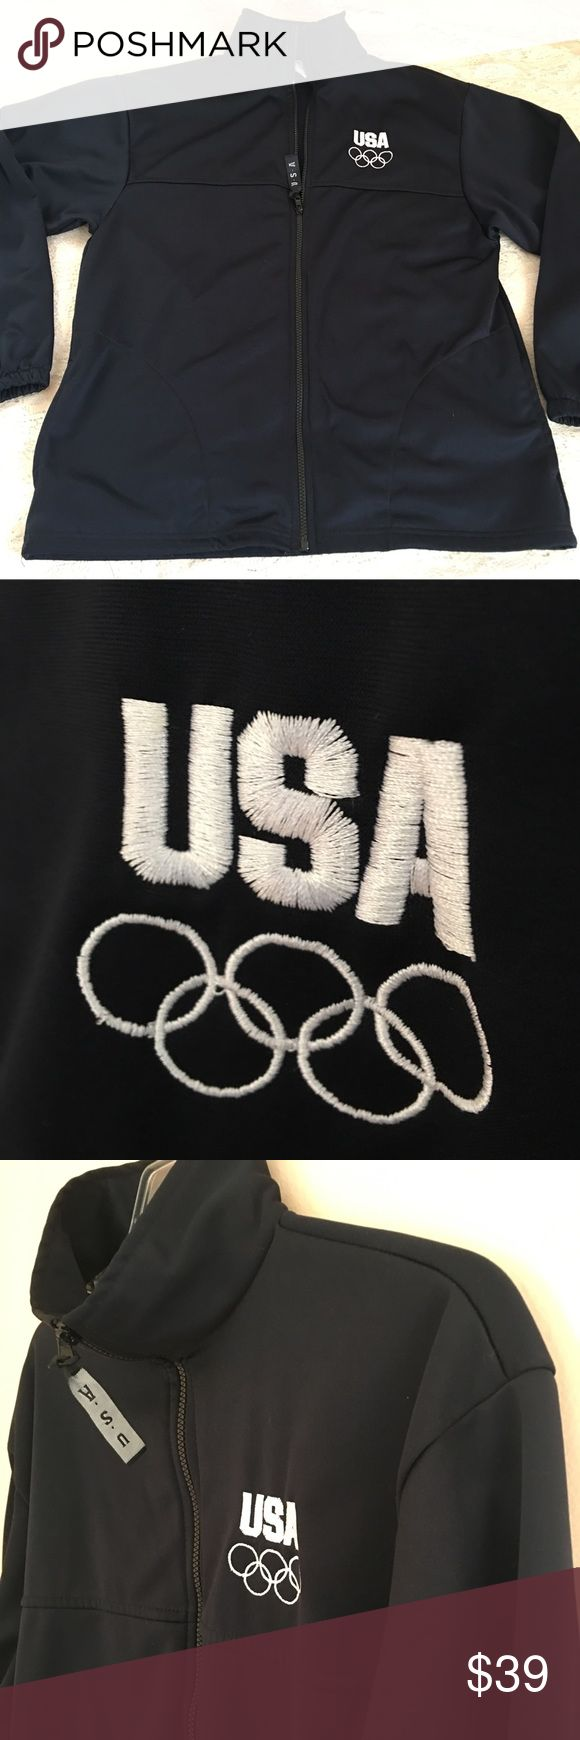 USA Official Team Olympic Warmer Jacket United States Olympic Committee Team  Men's Dark Navy Blue/Black Warmer Jacket Size L Preowned - gently used - very good condition Made in USA United States Olympic Committee Jackets & Coats Performance Jackets